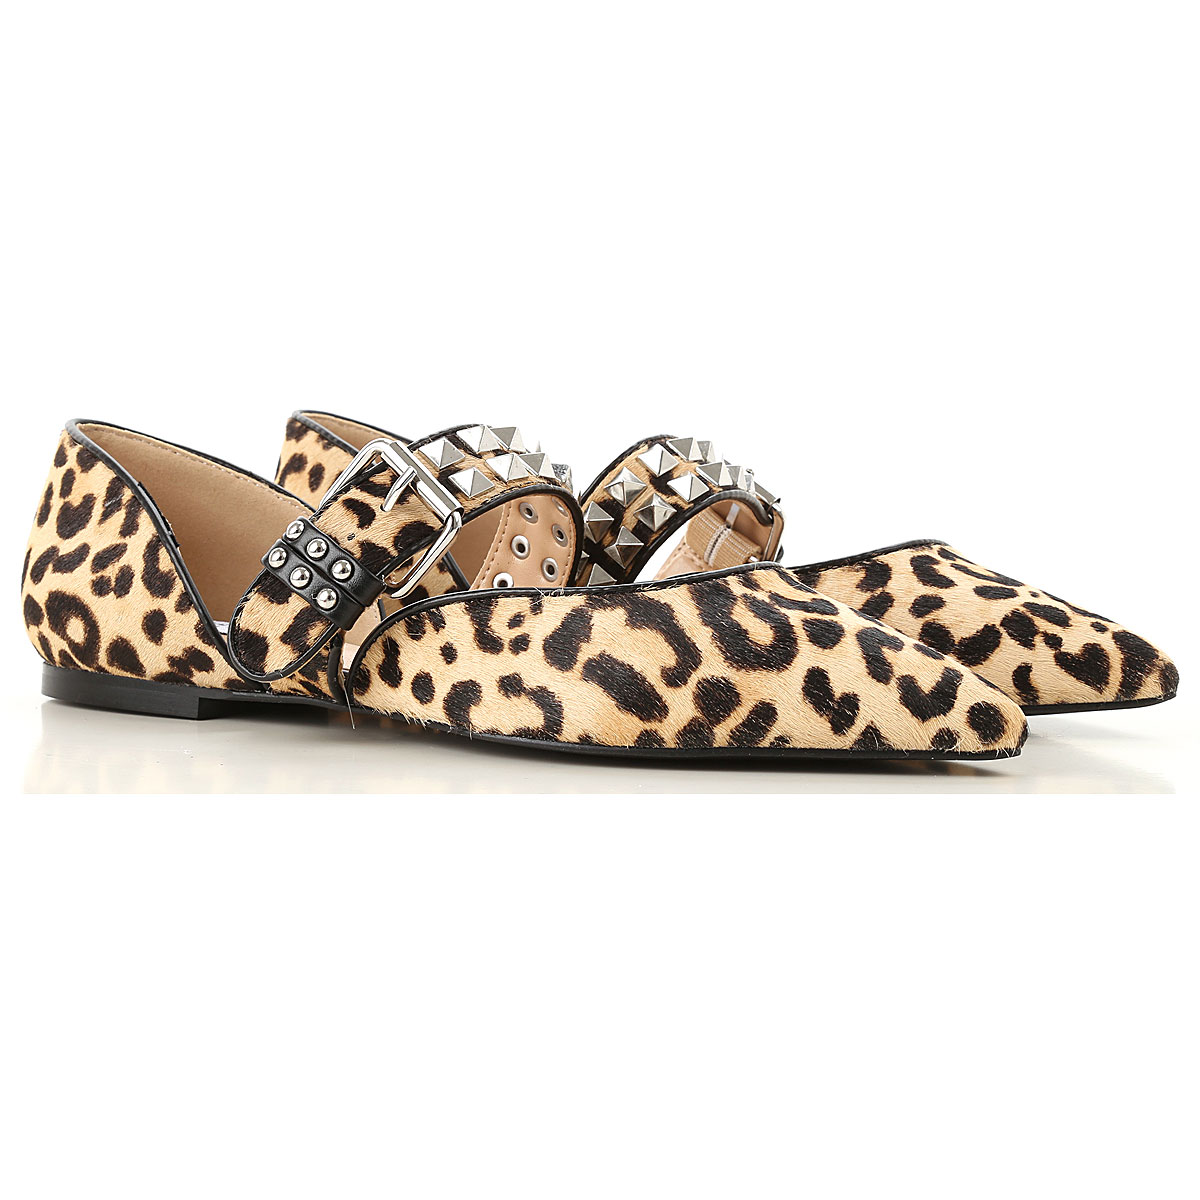 sito affidabile 04937 0db40 Womens Shoes Steve Madden, Style code: pixel-leopard-